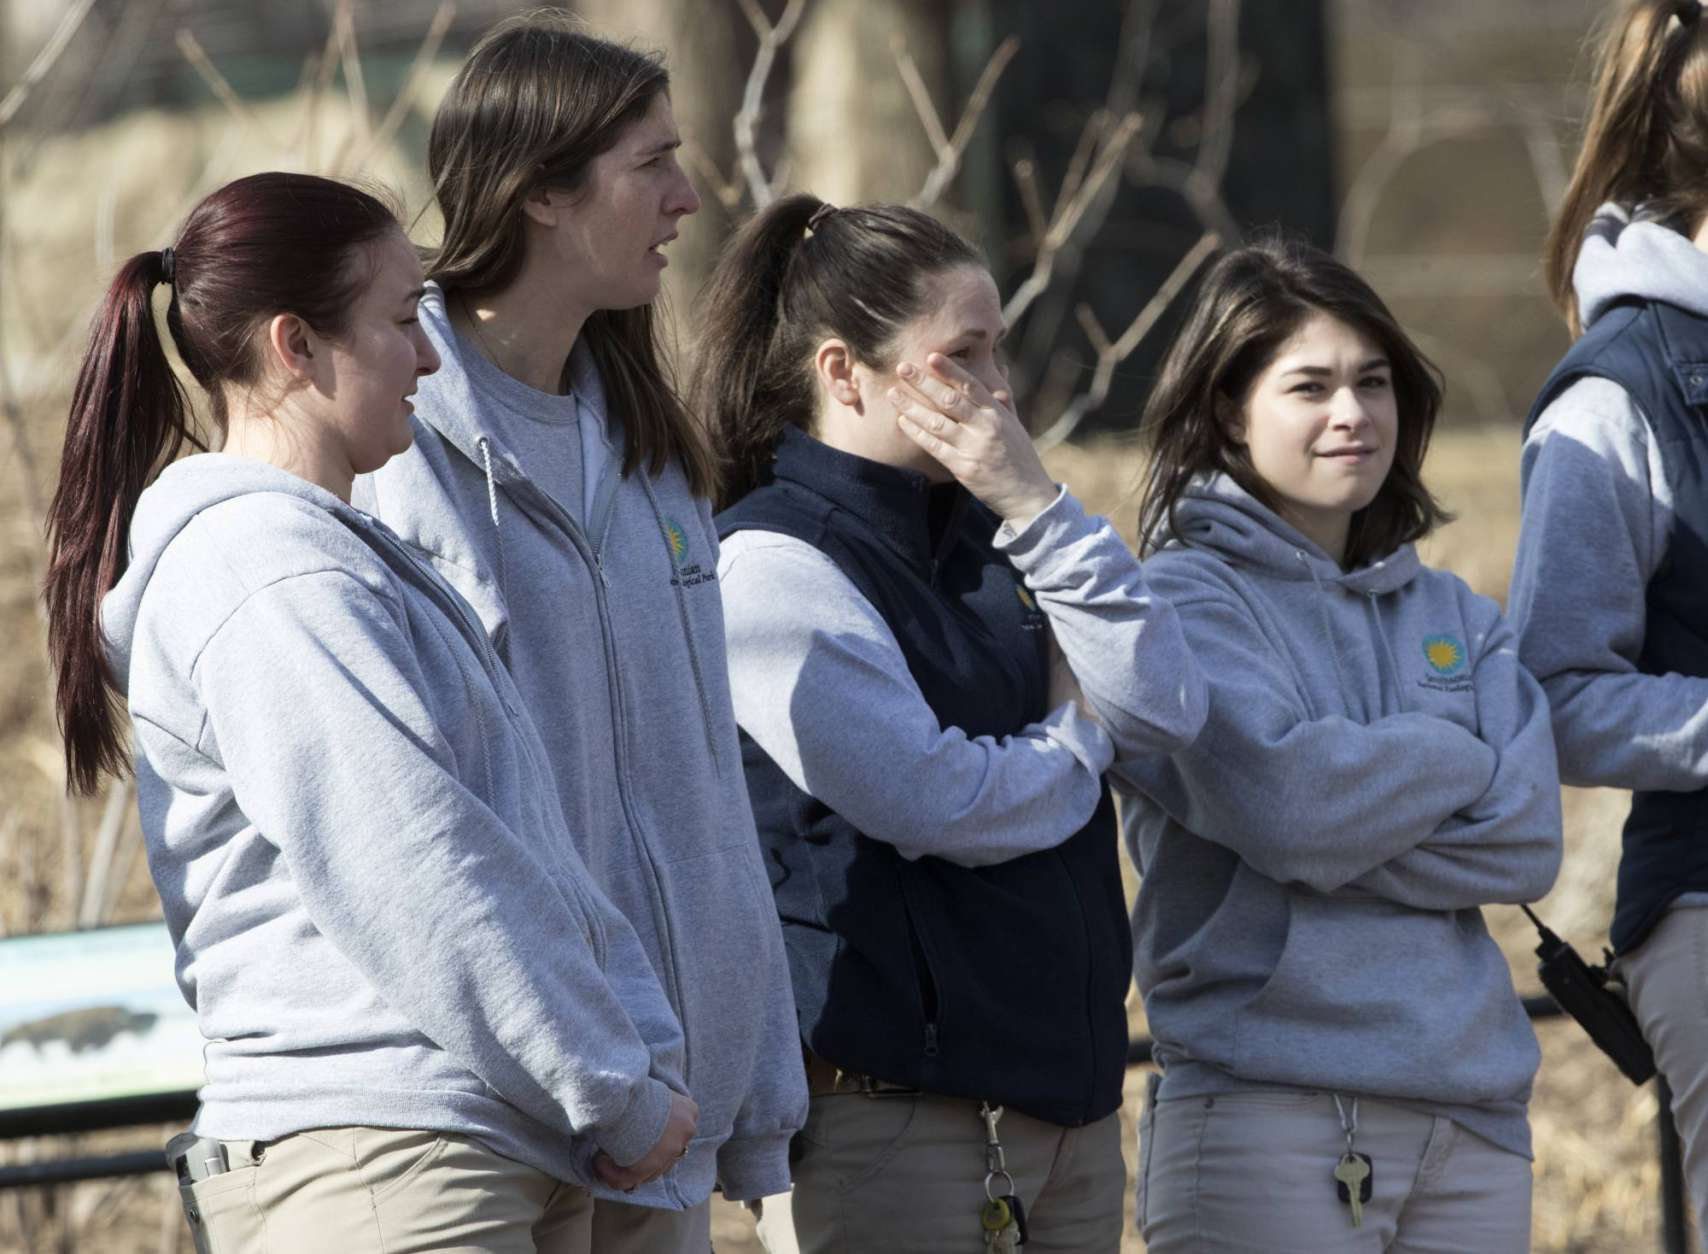 Animal keepers watch as Bao Bao, the beloved 3-year-old panda at the National Zoo in Washington, is loaded into a truck as she leaves on a one-way flight to China to join a panda breeding program, Tuesday, Feb. 21, 2017. (AP Photo/J. Scott Applewhite)